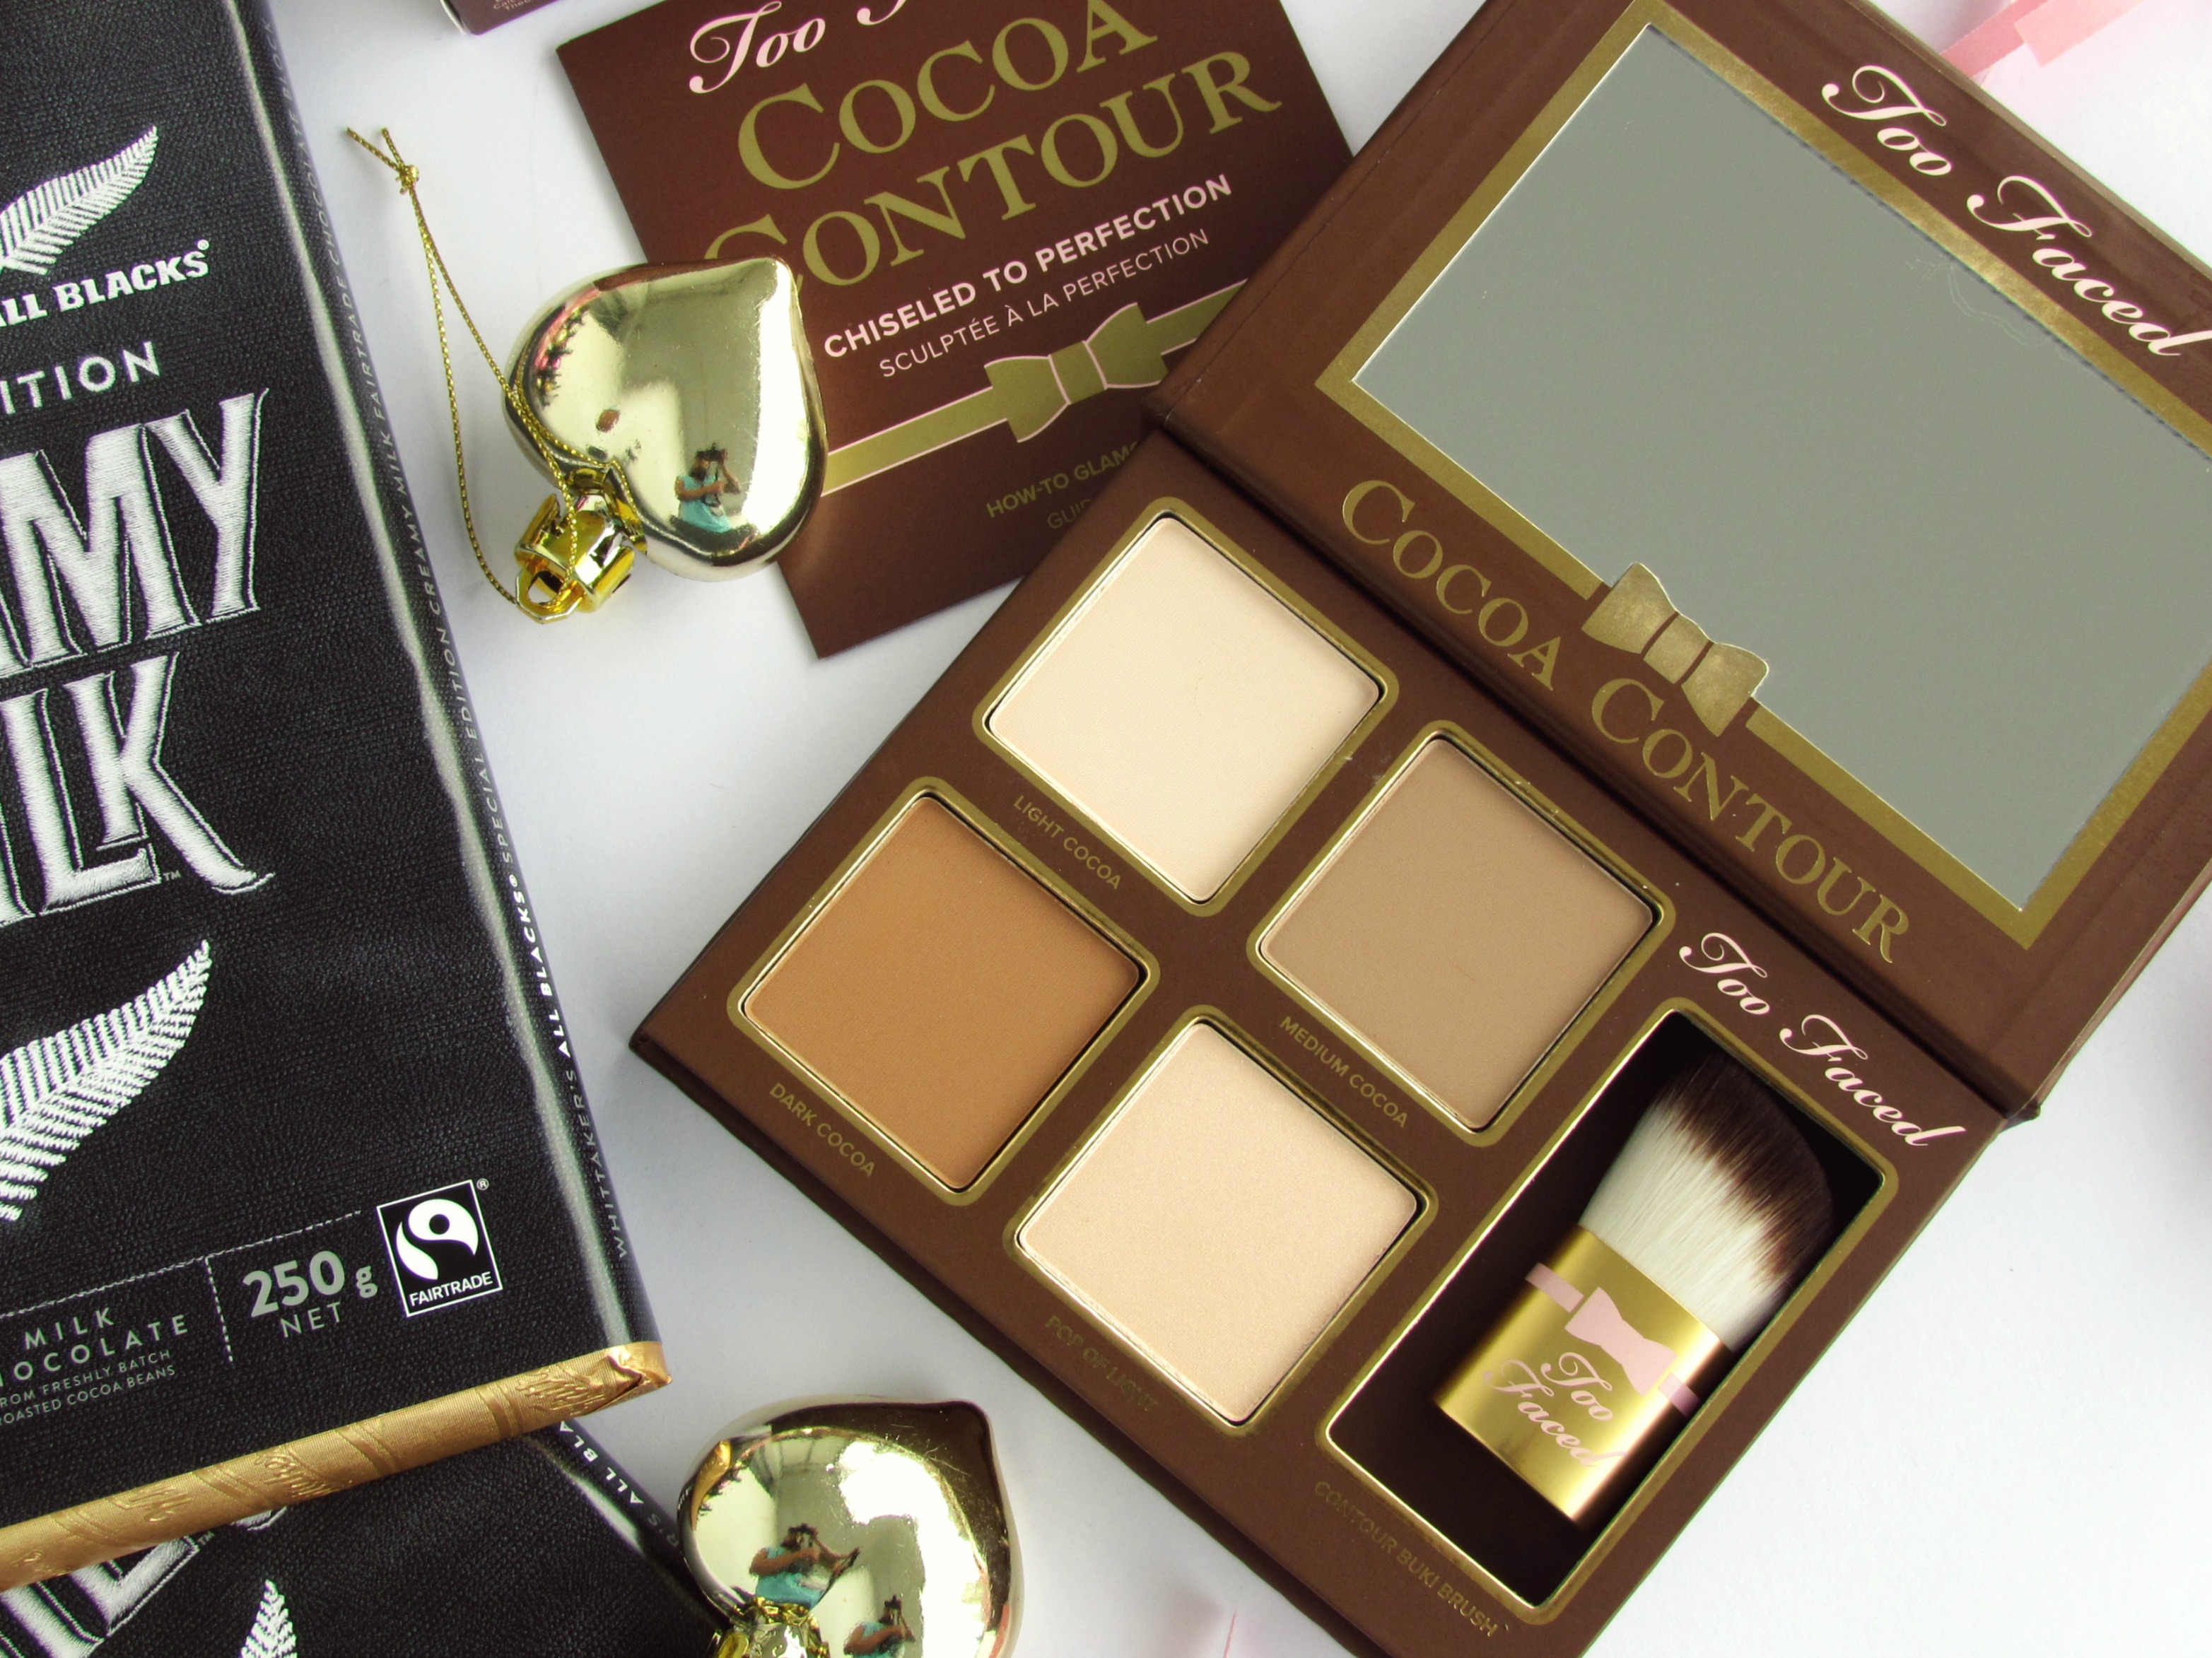 Too Faced Cocoa Contour Chiseled to Perfection Palette